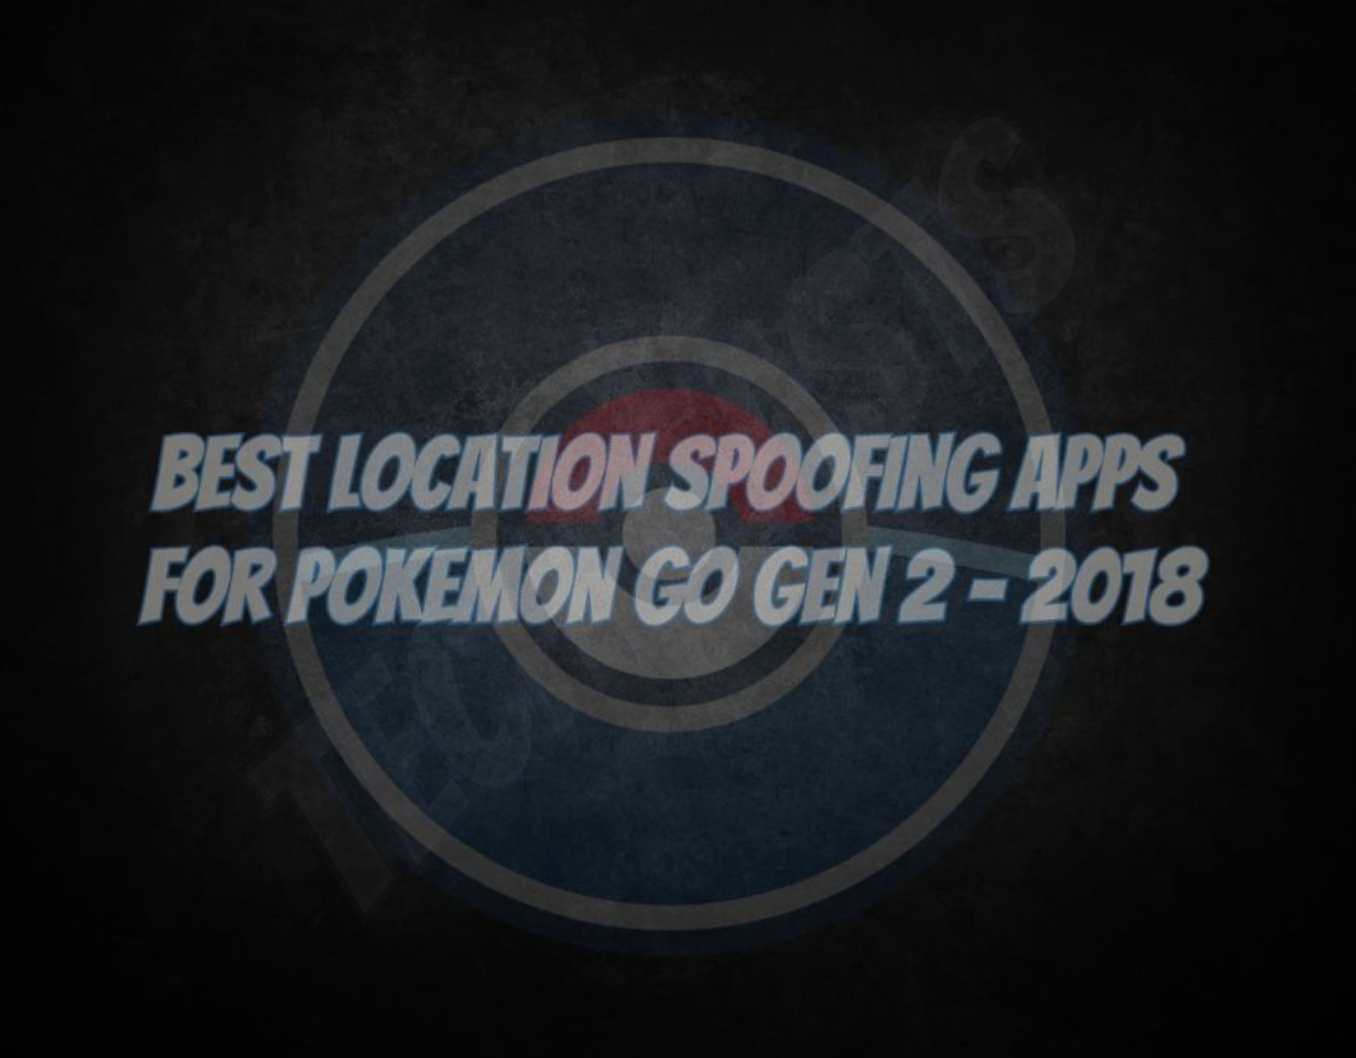 Location Spoofing Apps for Pokemon GO